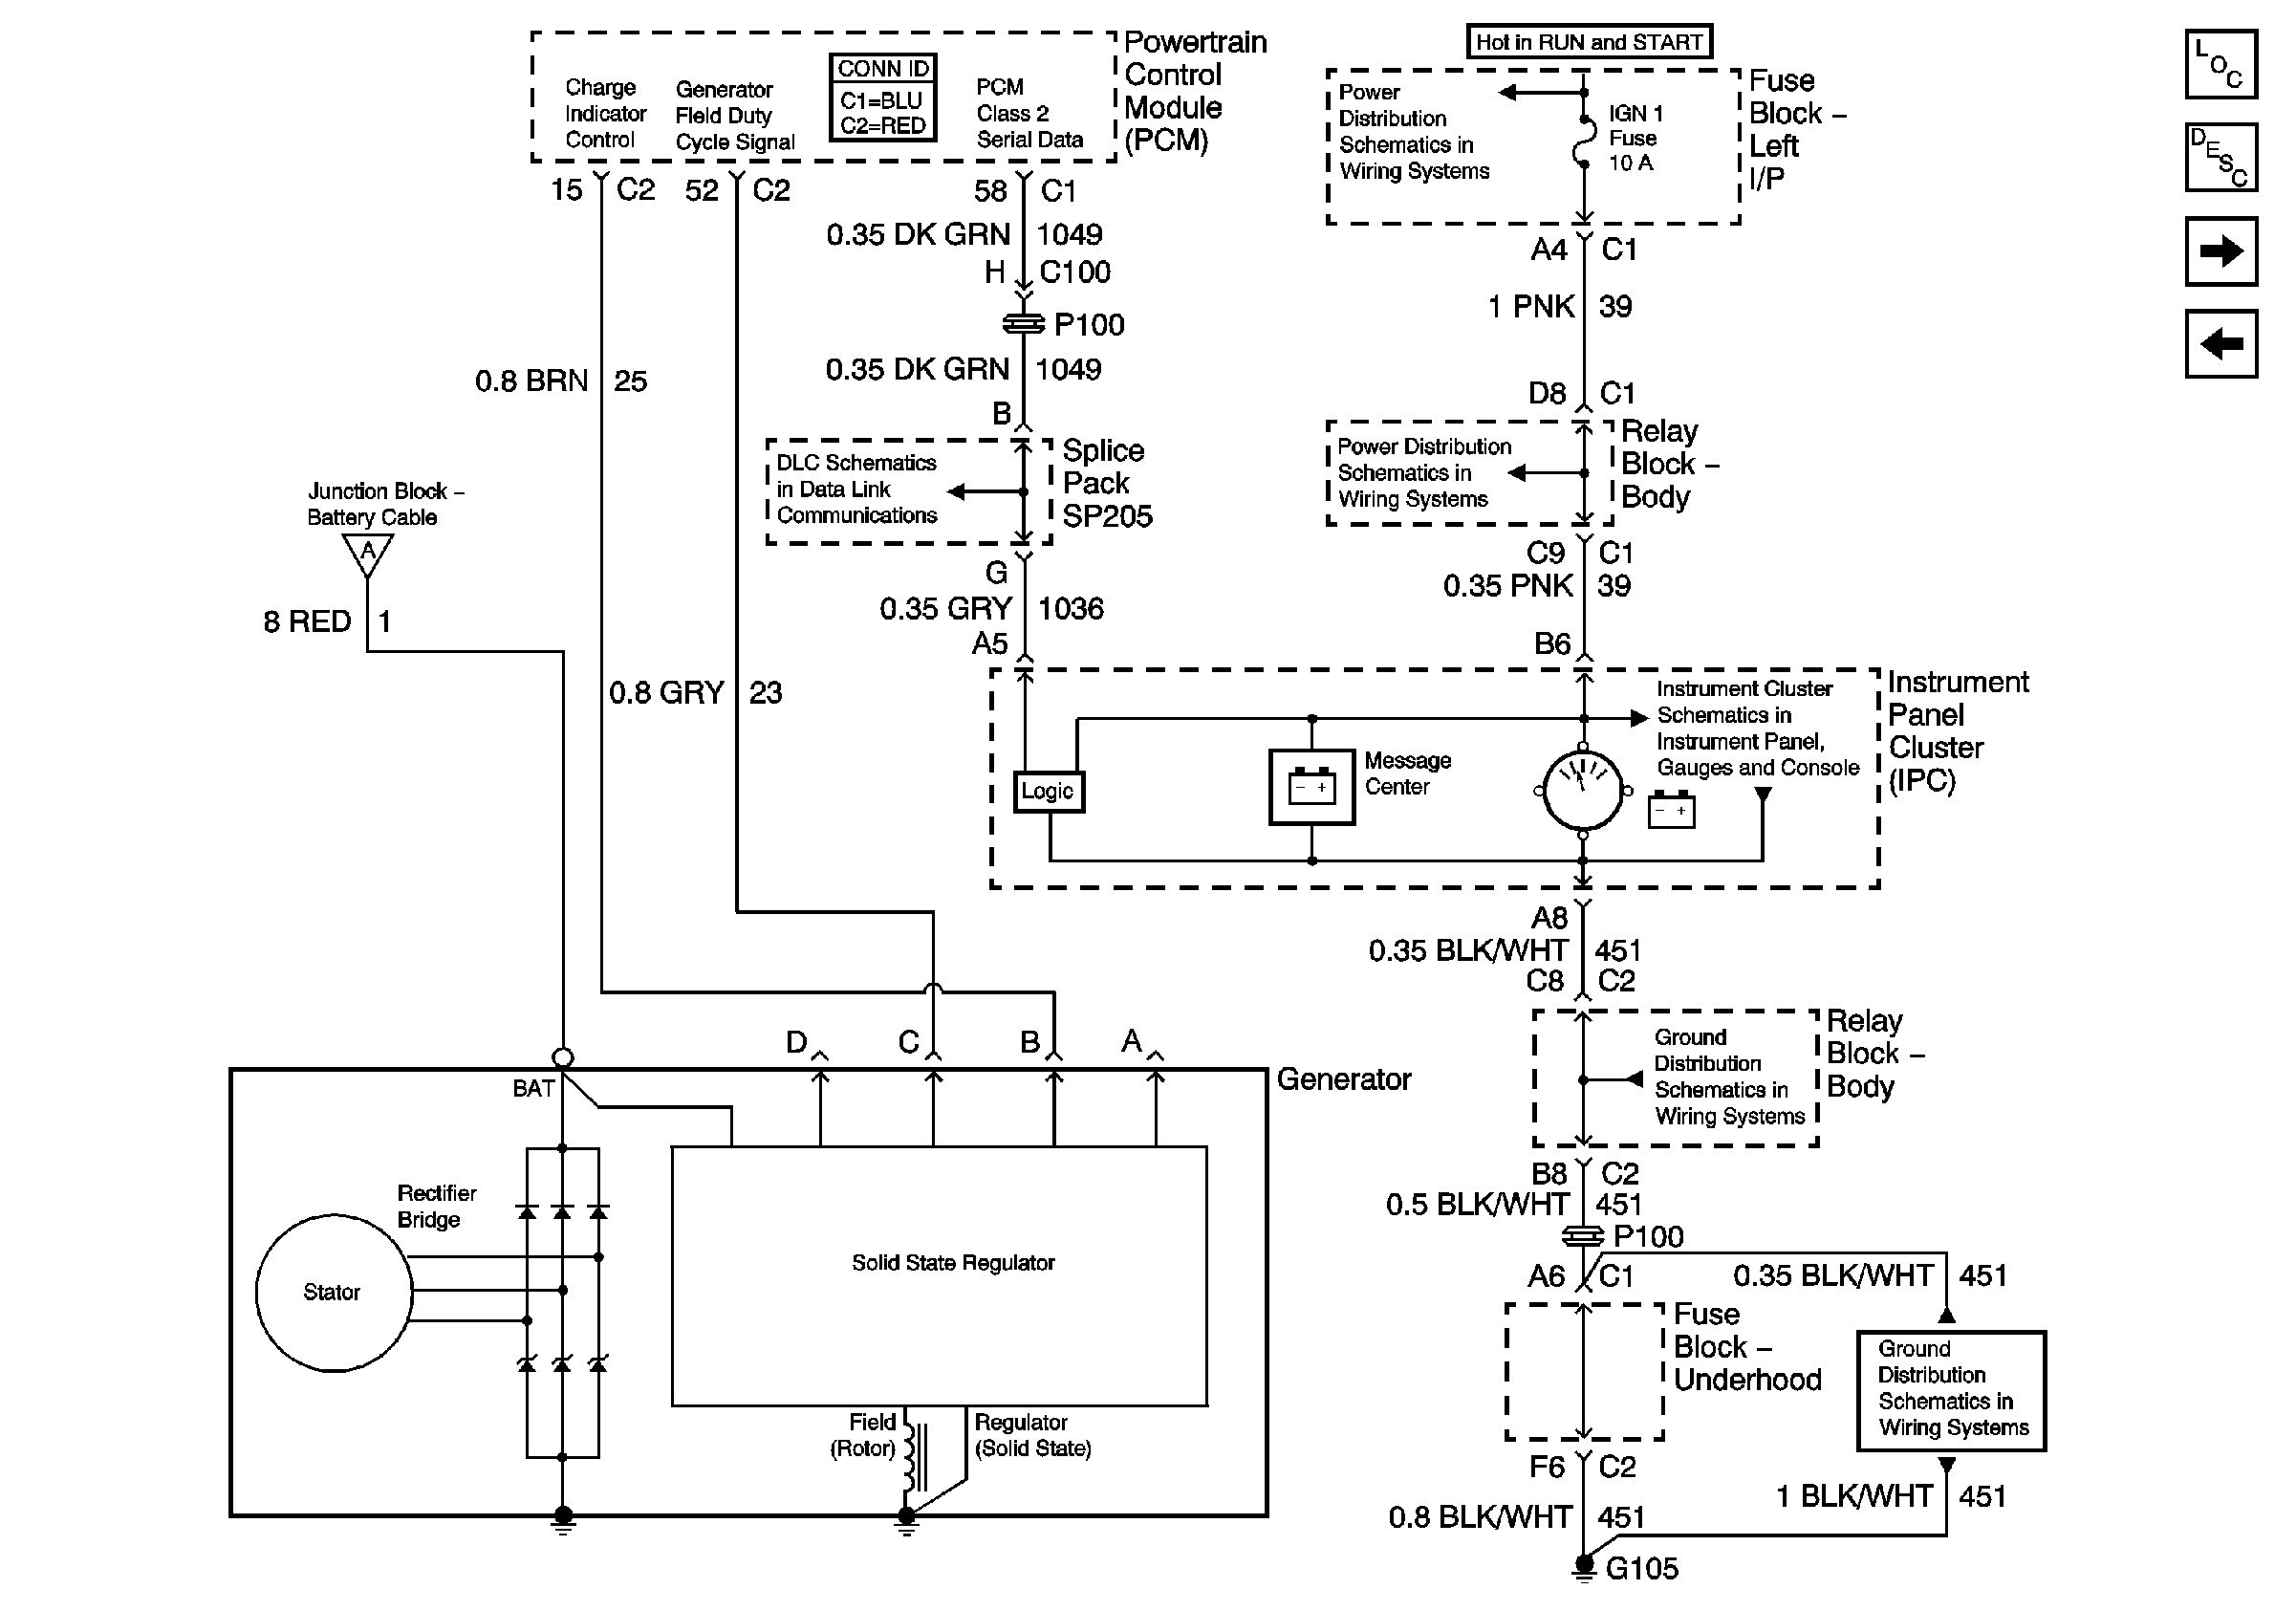 2008 Gmc 2500hd Fuse Diagram Trusted Wiring Diagram 2006 VW Beetle Fuse  Chart 2006 Smart Car Fuse Diagram